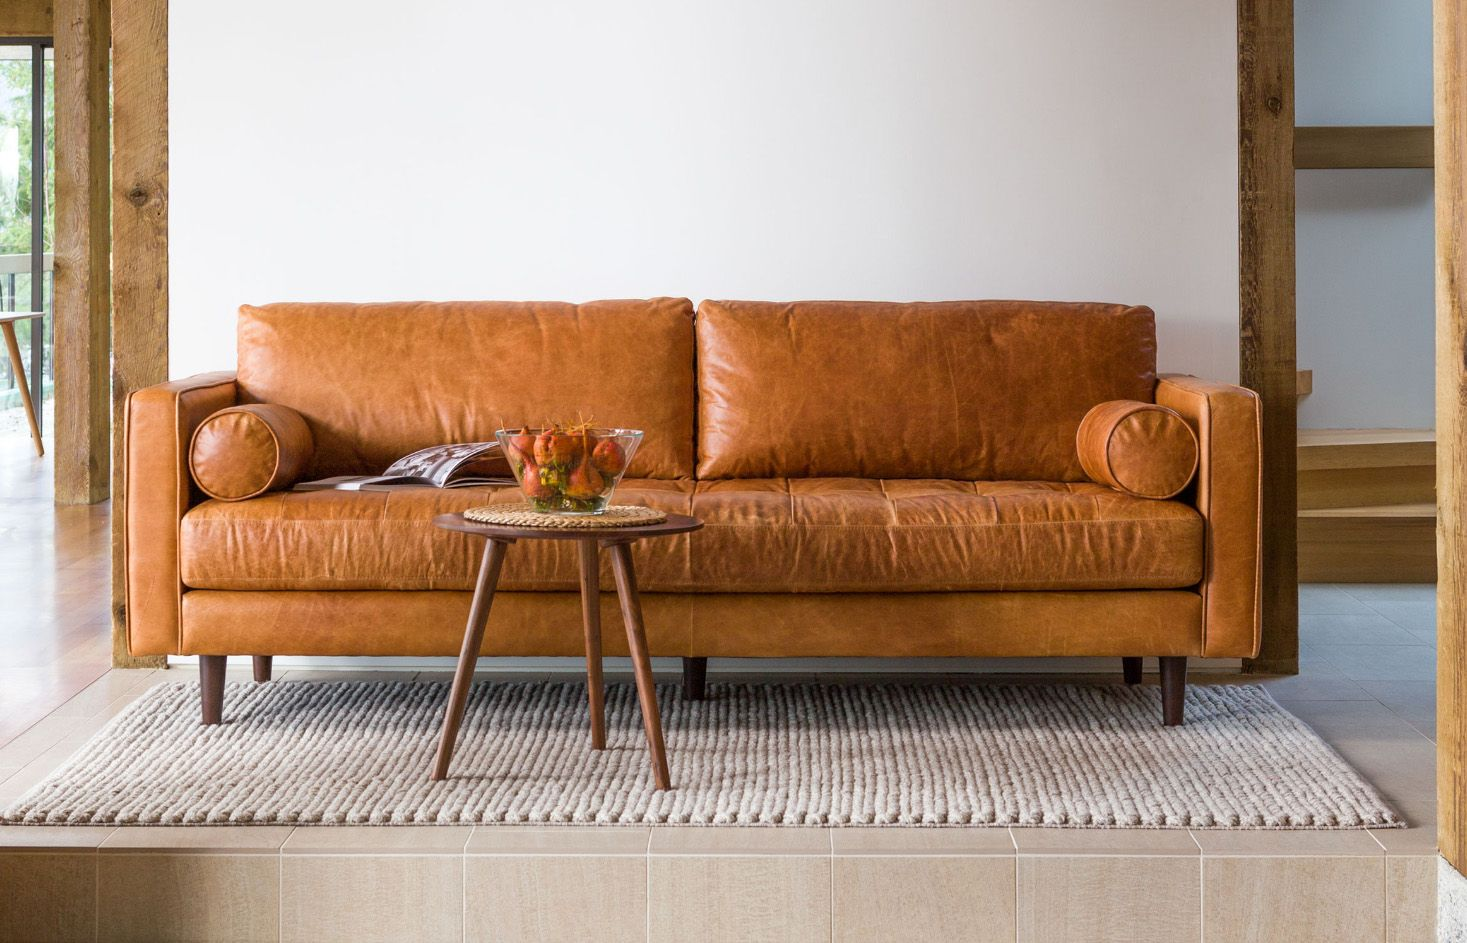 10 Stylish Modern Leather Sofas For Every Budget Best Leather